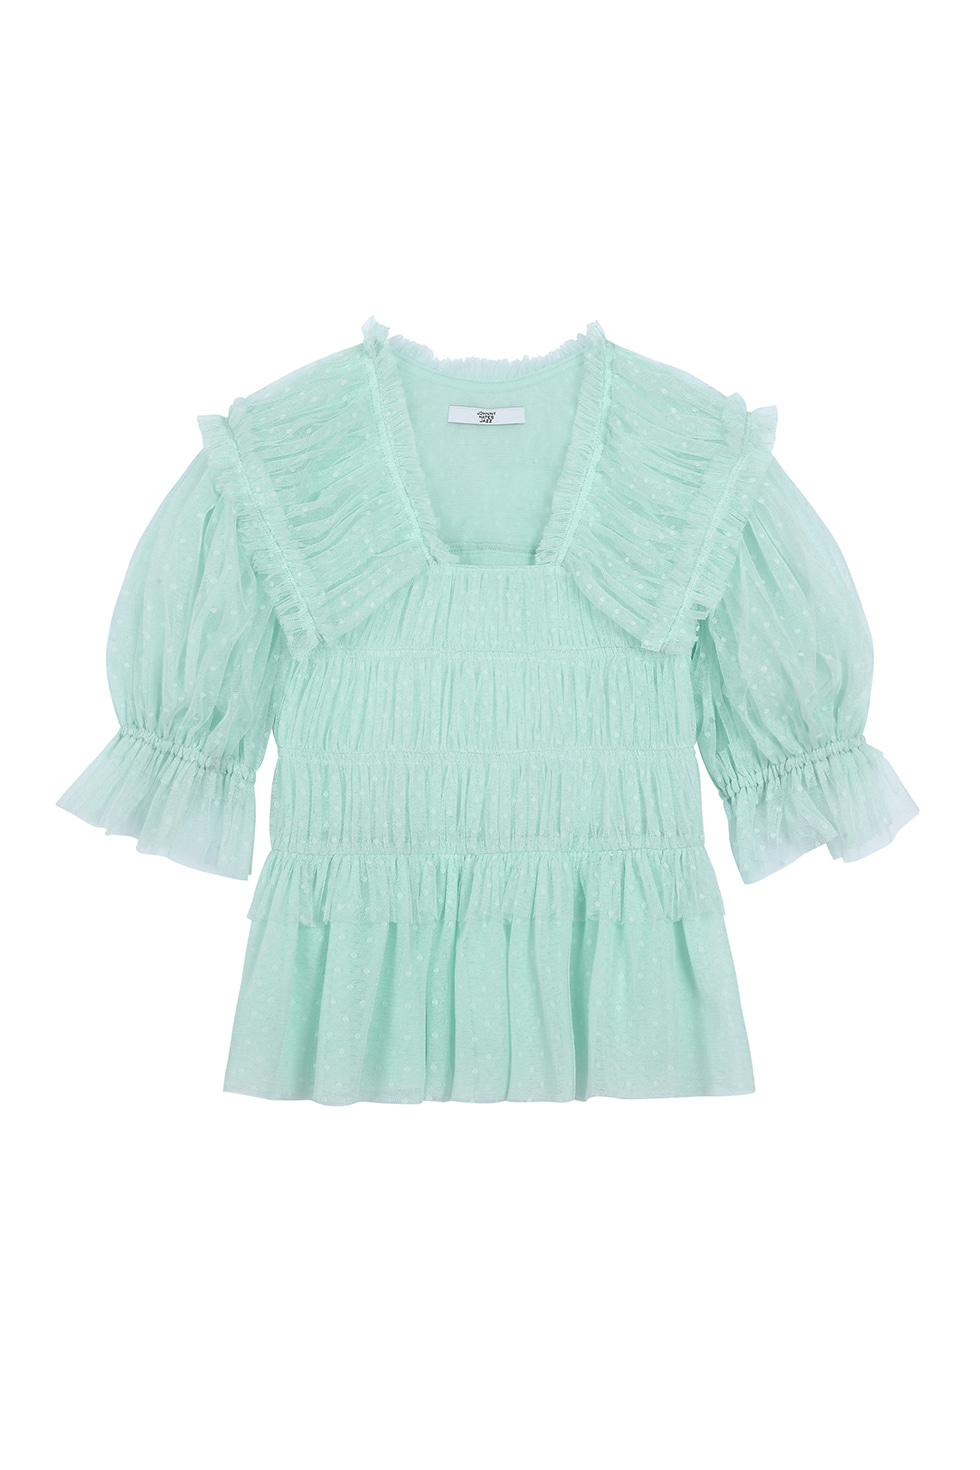 SHIRRING TULLE BLOUSE - MINT